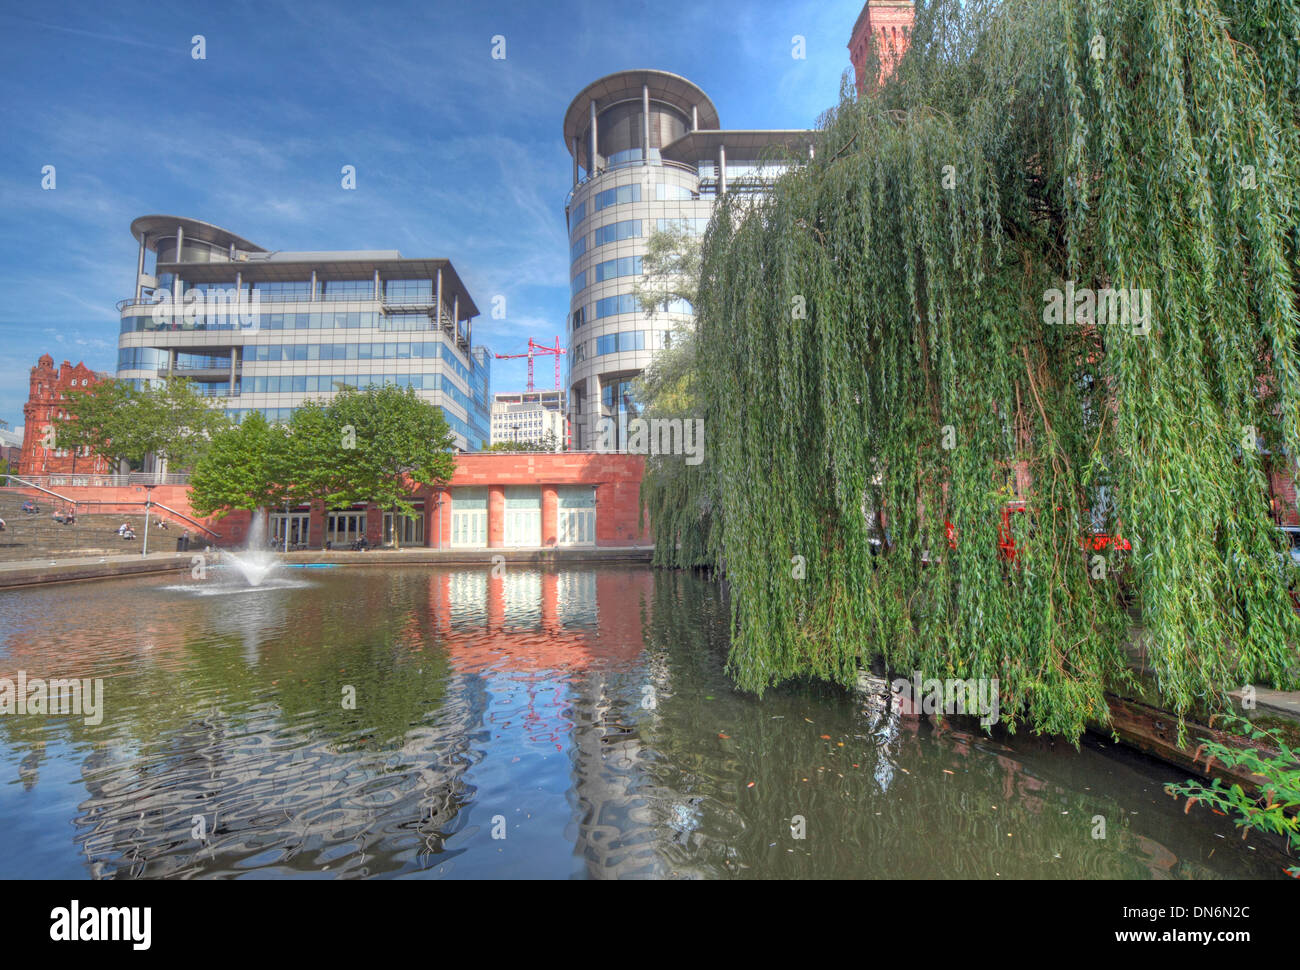 Sq,PricewaterhouseCoopers,LLP,Square,Lower,Mosley,Street,st,M2,3PW,GB,England,UK,M23PW,wide,angle,wideangle,shot,image,landscape,Midland,Hotel,north,west,northwest,centre,city,town,blue,sky,skies,old,new,architecture,building,buildings,architect,named,after,Hallé,Orchestra,Halle,Gotonysmith with canal basin reflections Price waterhouse Coopers,Buy Pictures of,Buy Images Of